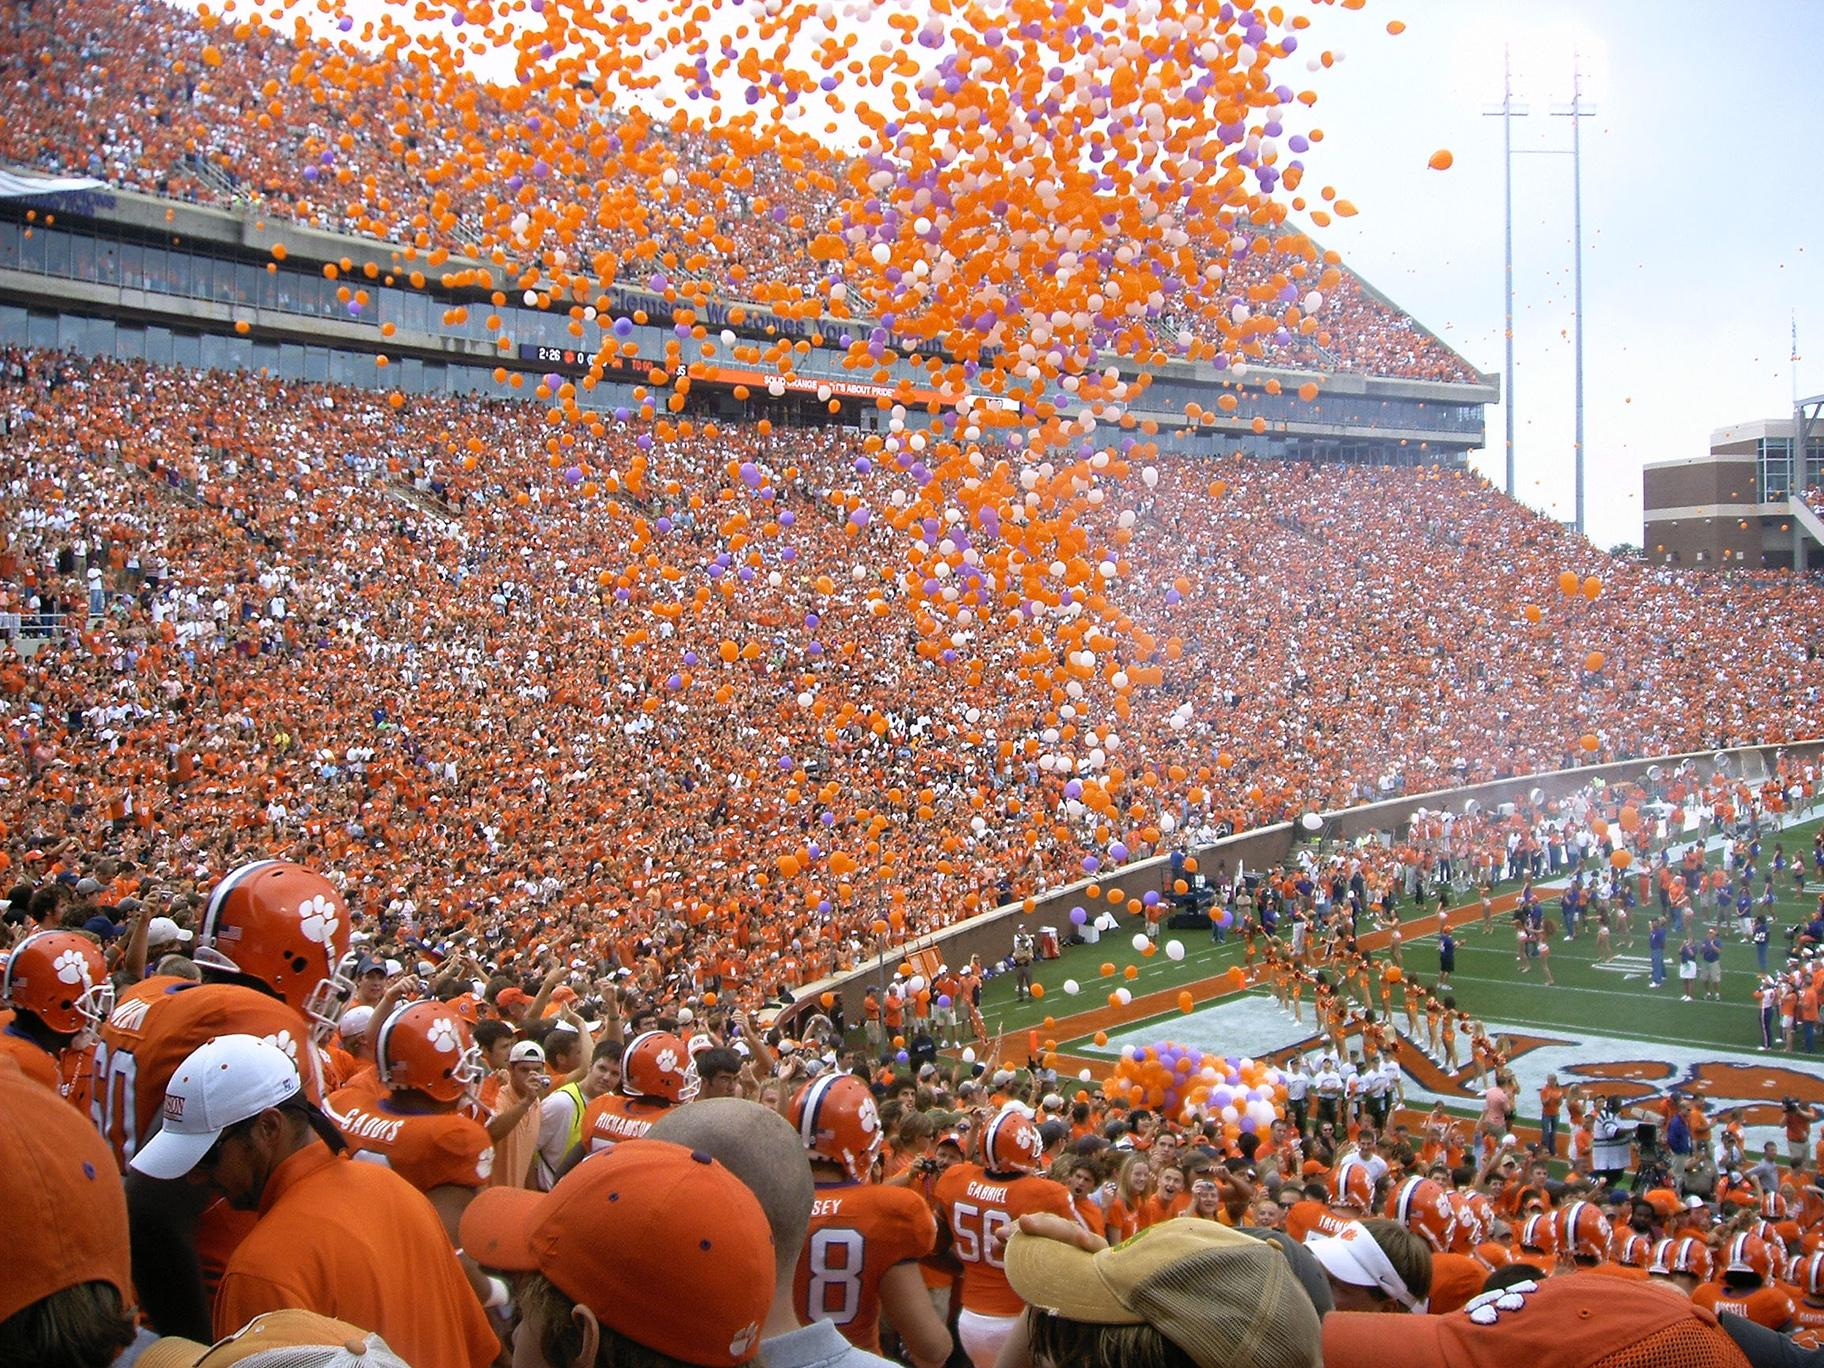 Clemson University ended a 30-year tradition of releasing thousands of orange balloons before football games last year after facing pressure from environmental and animal rights groups. (Jason A G / Flickr)